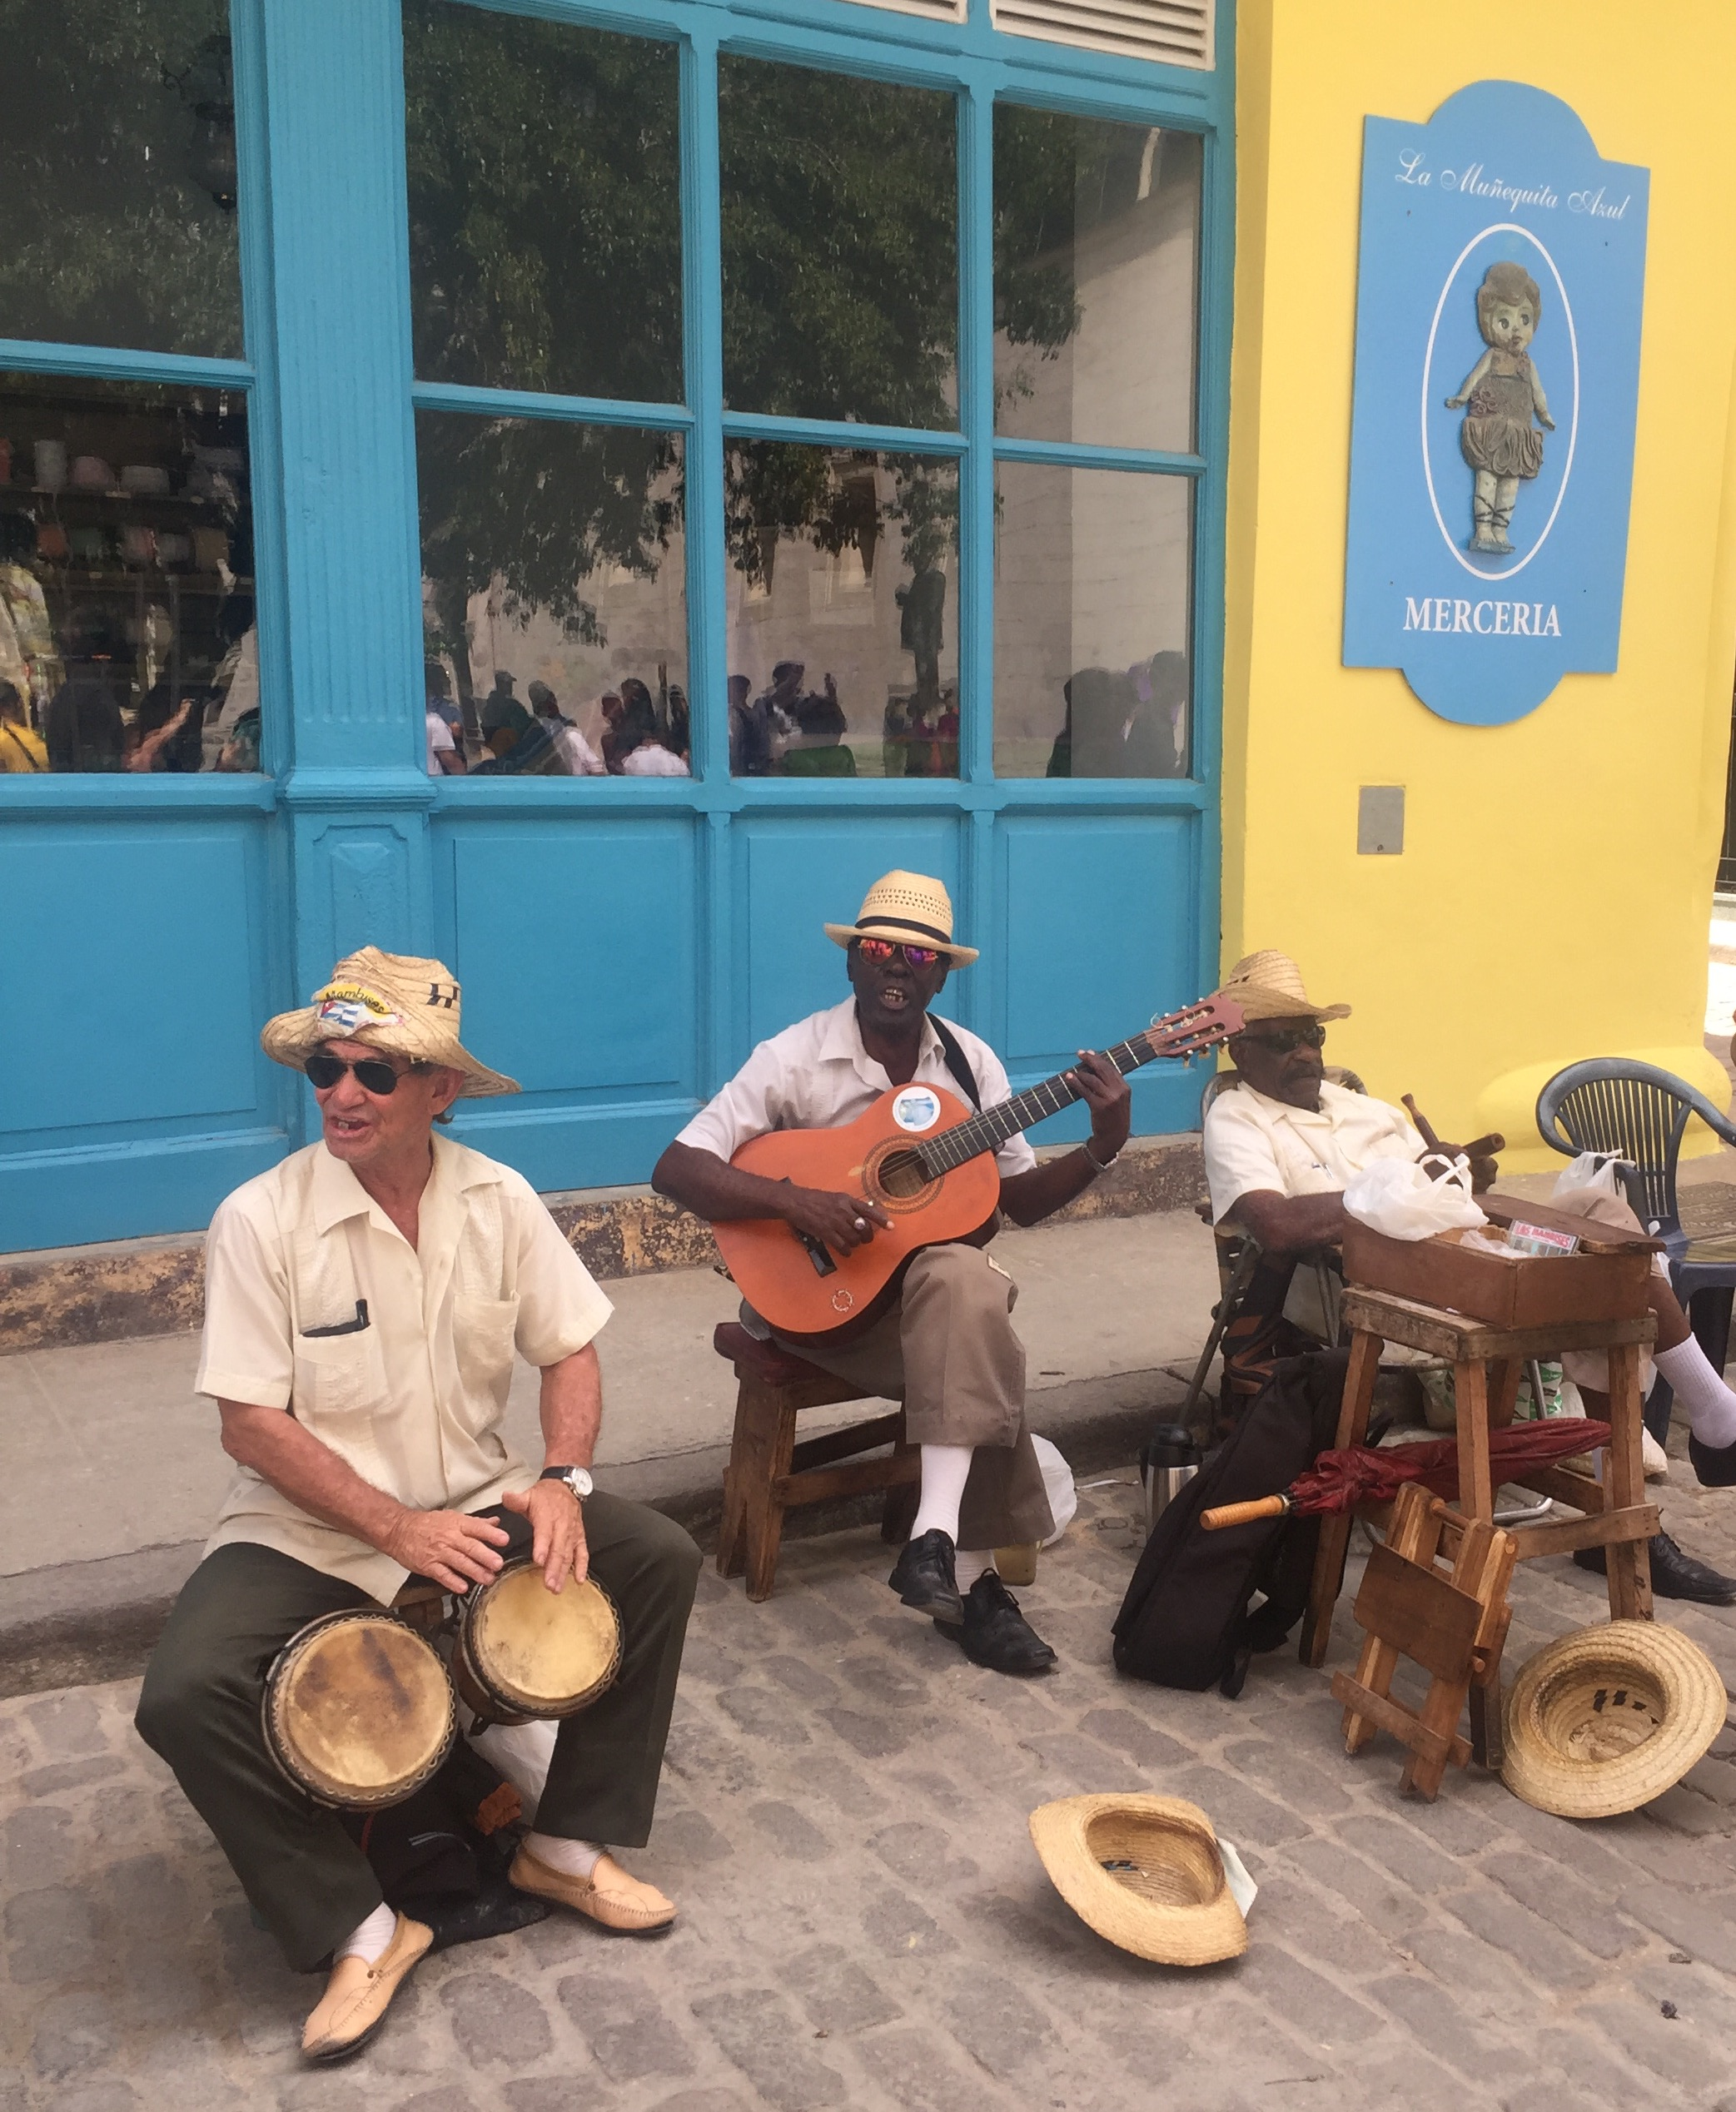 Cuban street musicians playing Chan Chan.